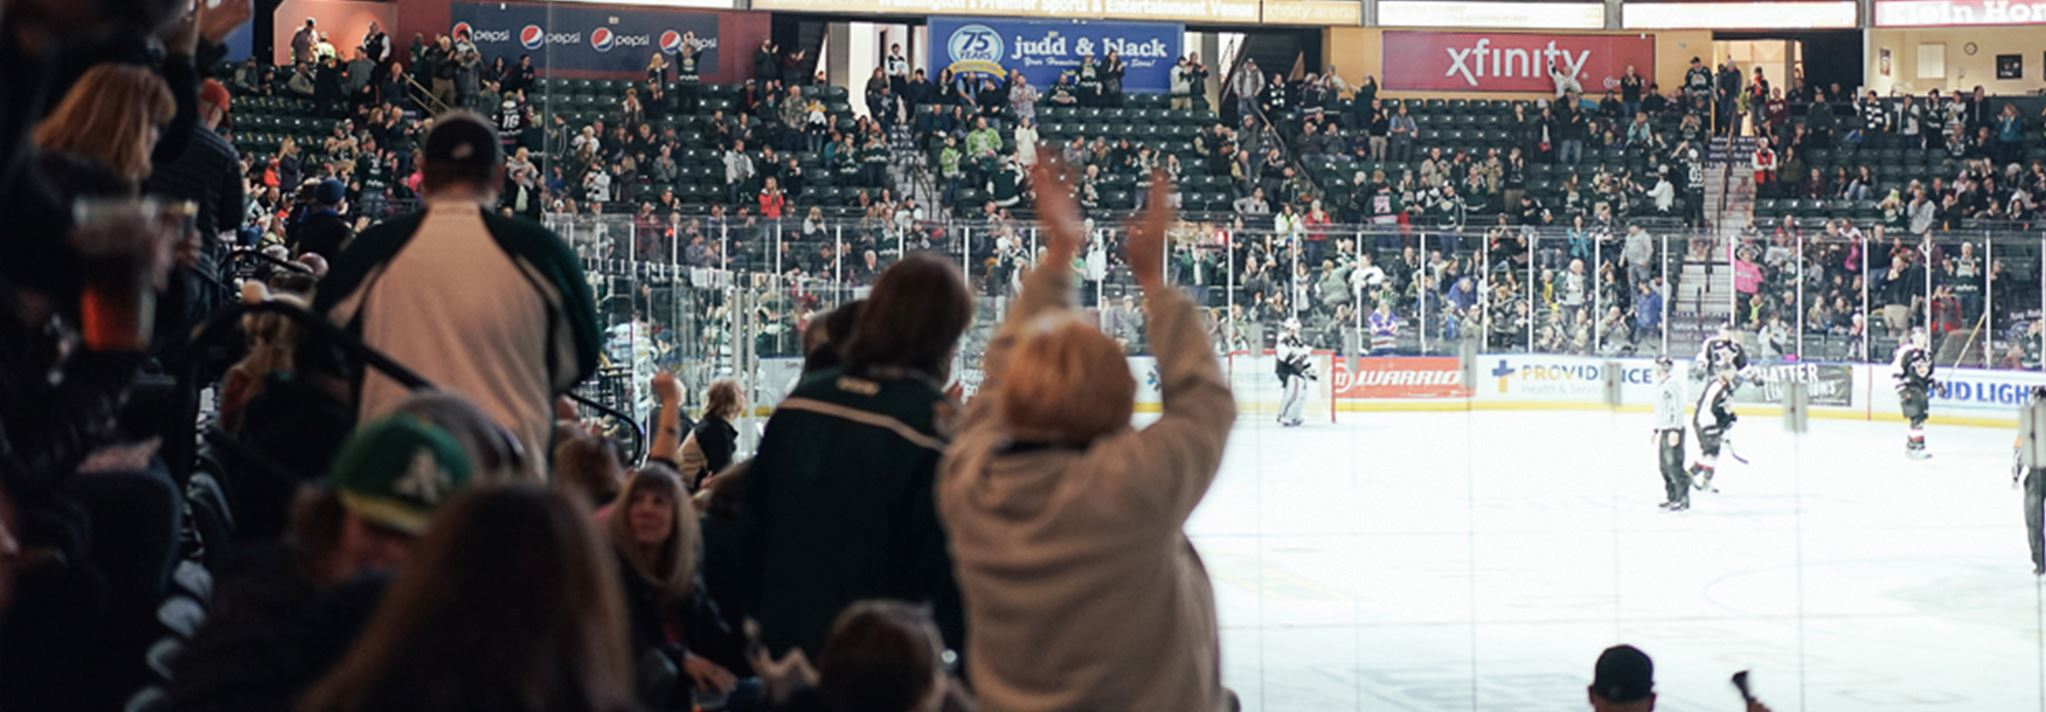 Cheering fans enjoying an Everett Silvertips game.